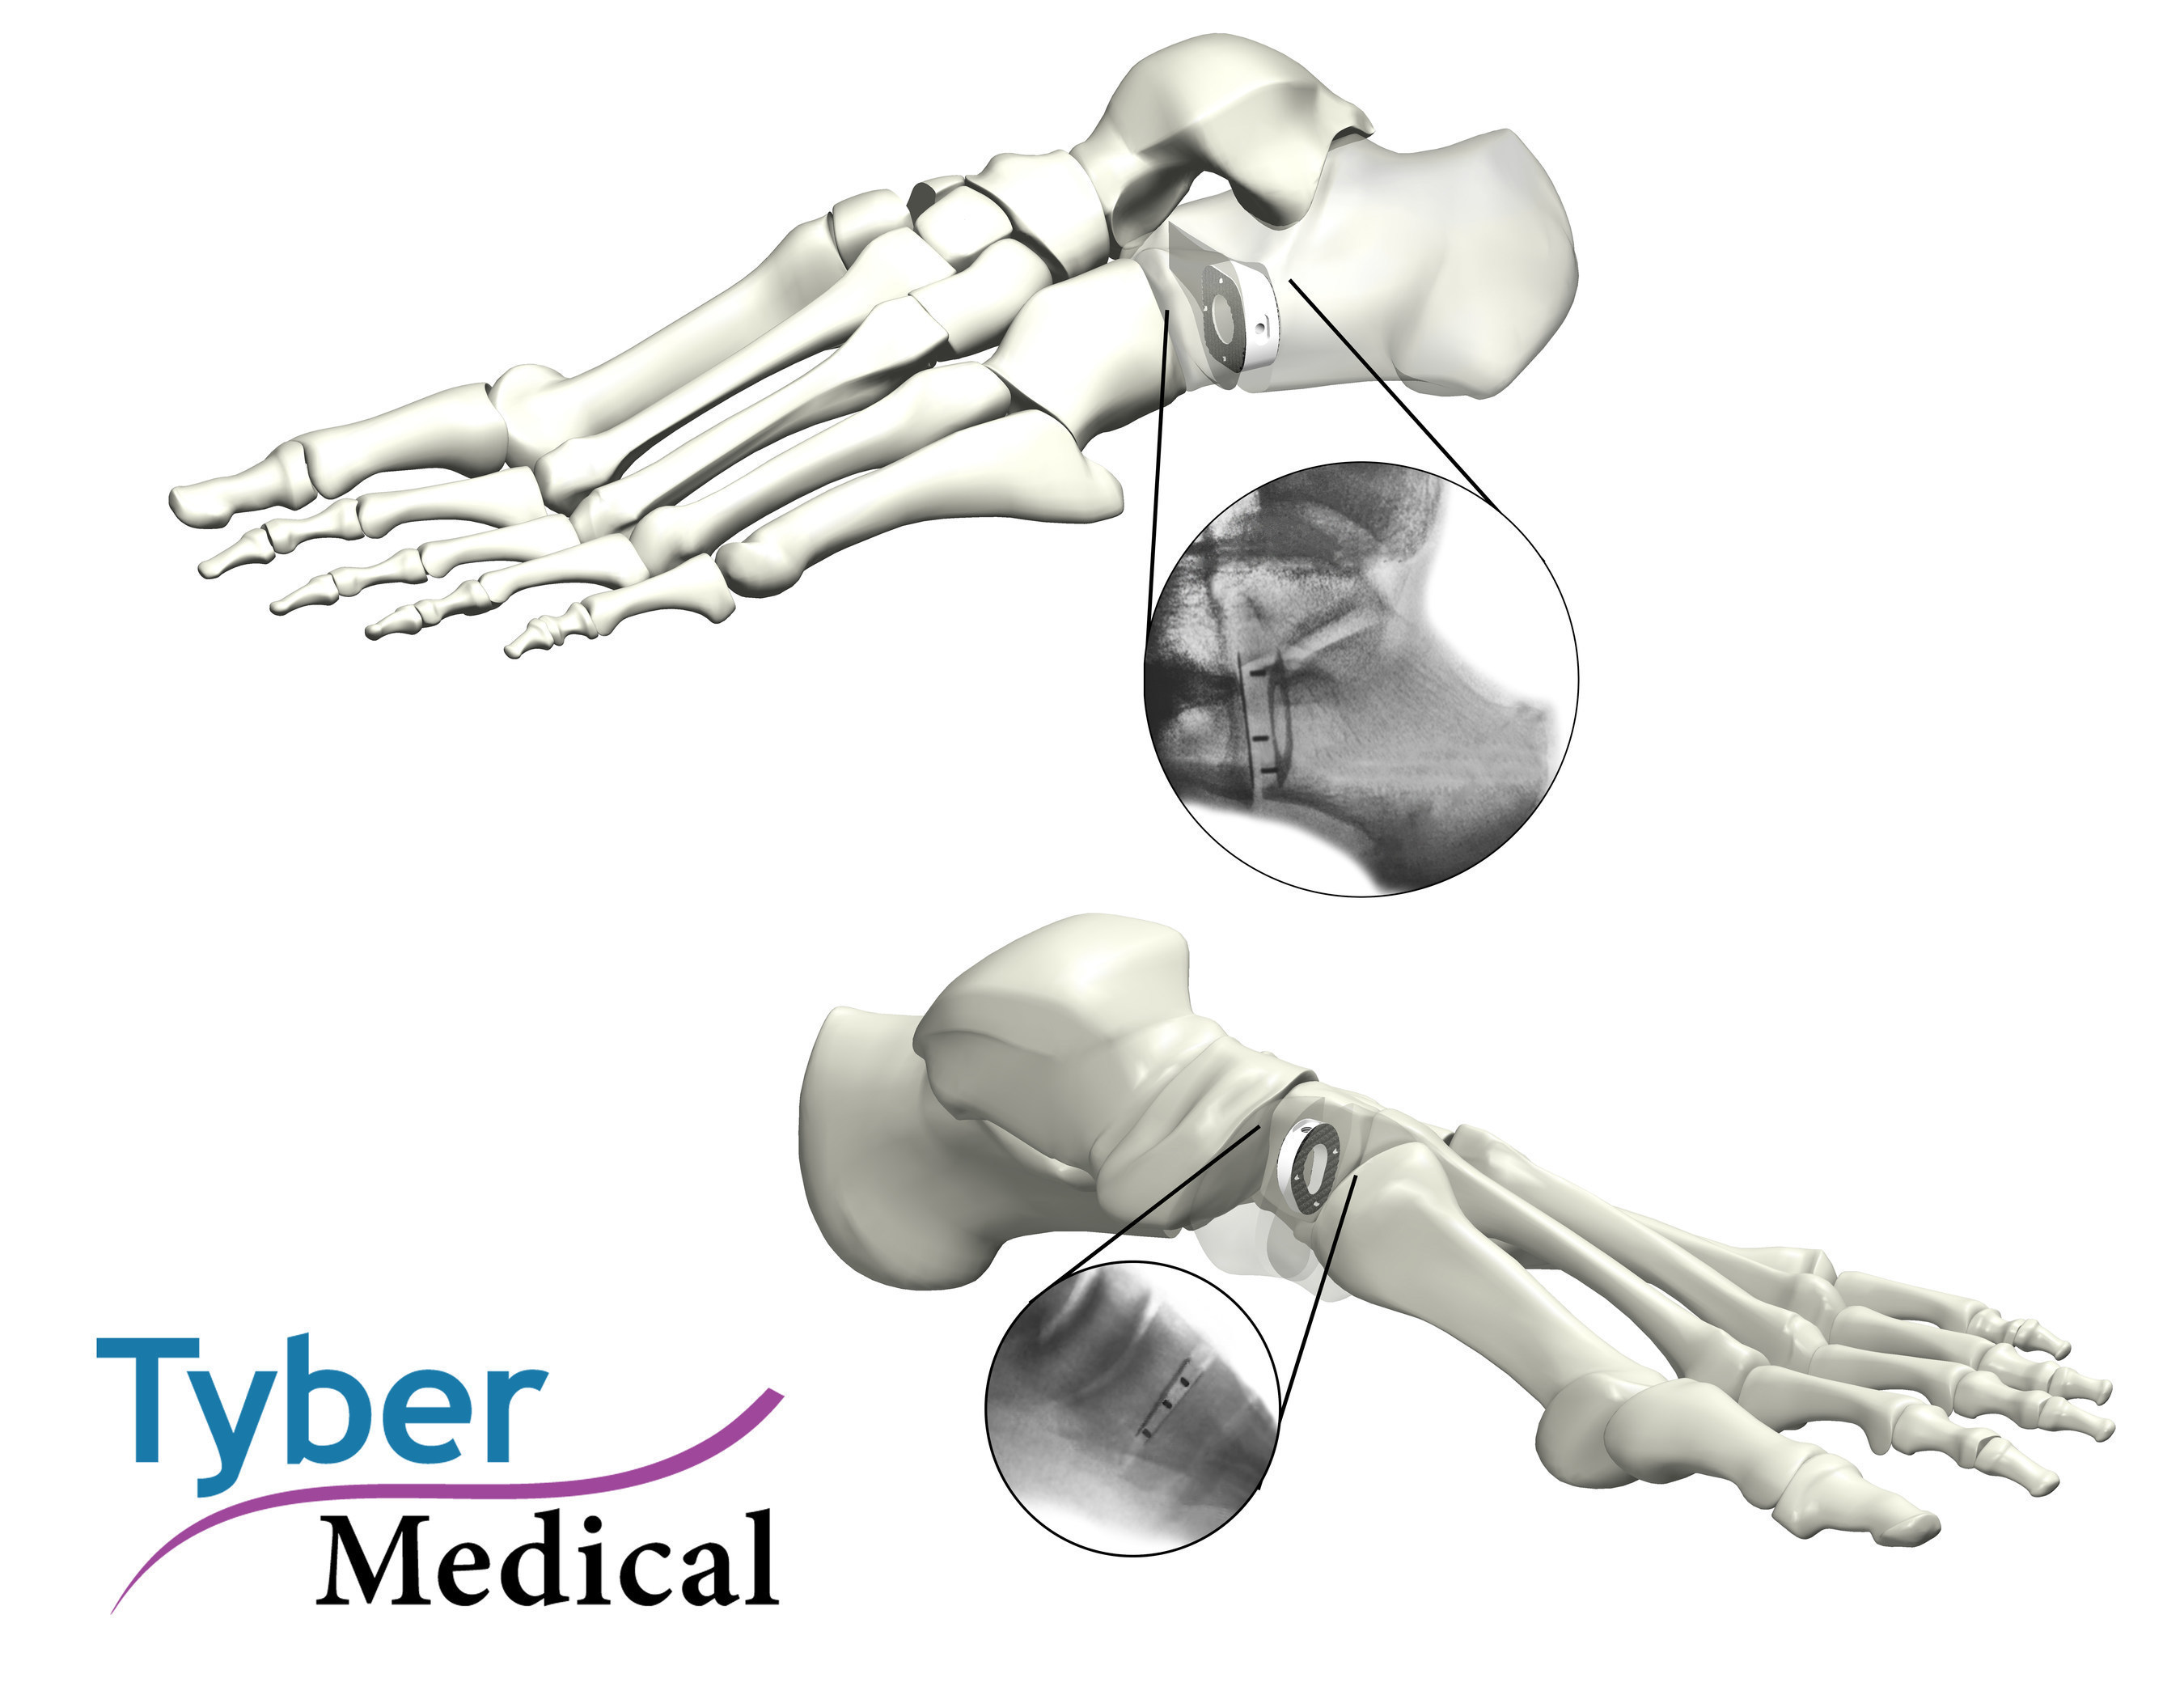 Tyber Medical Announces The Full Market Release For The TyWedge™ Evans And Cotton Osteotomy Wedge